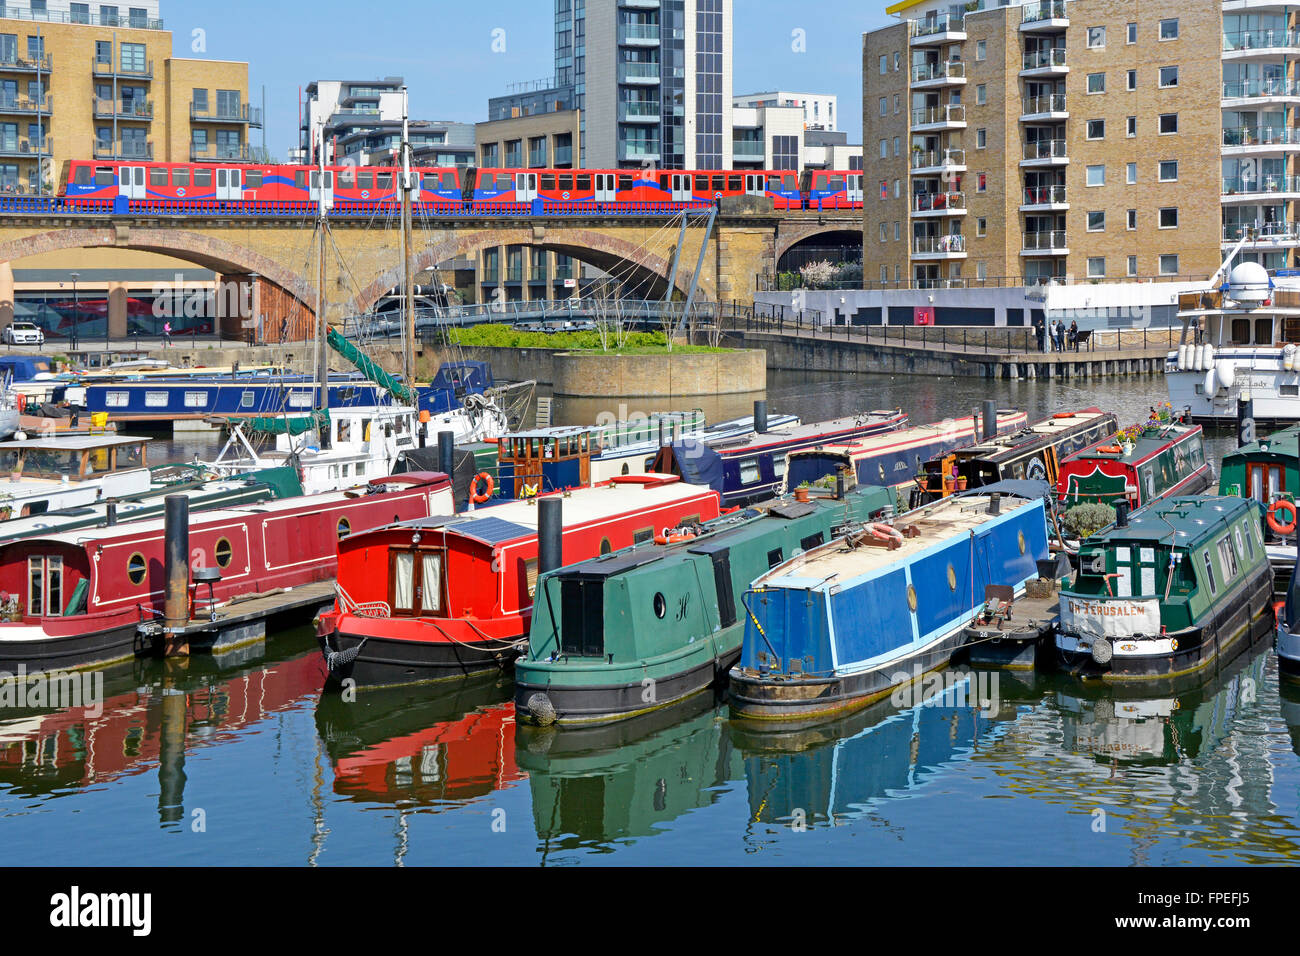 Assortment of narrowboats moored in Limehouse Basin with Docklands Light Railway train on brick viaduct East London - Stock Image